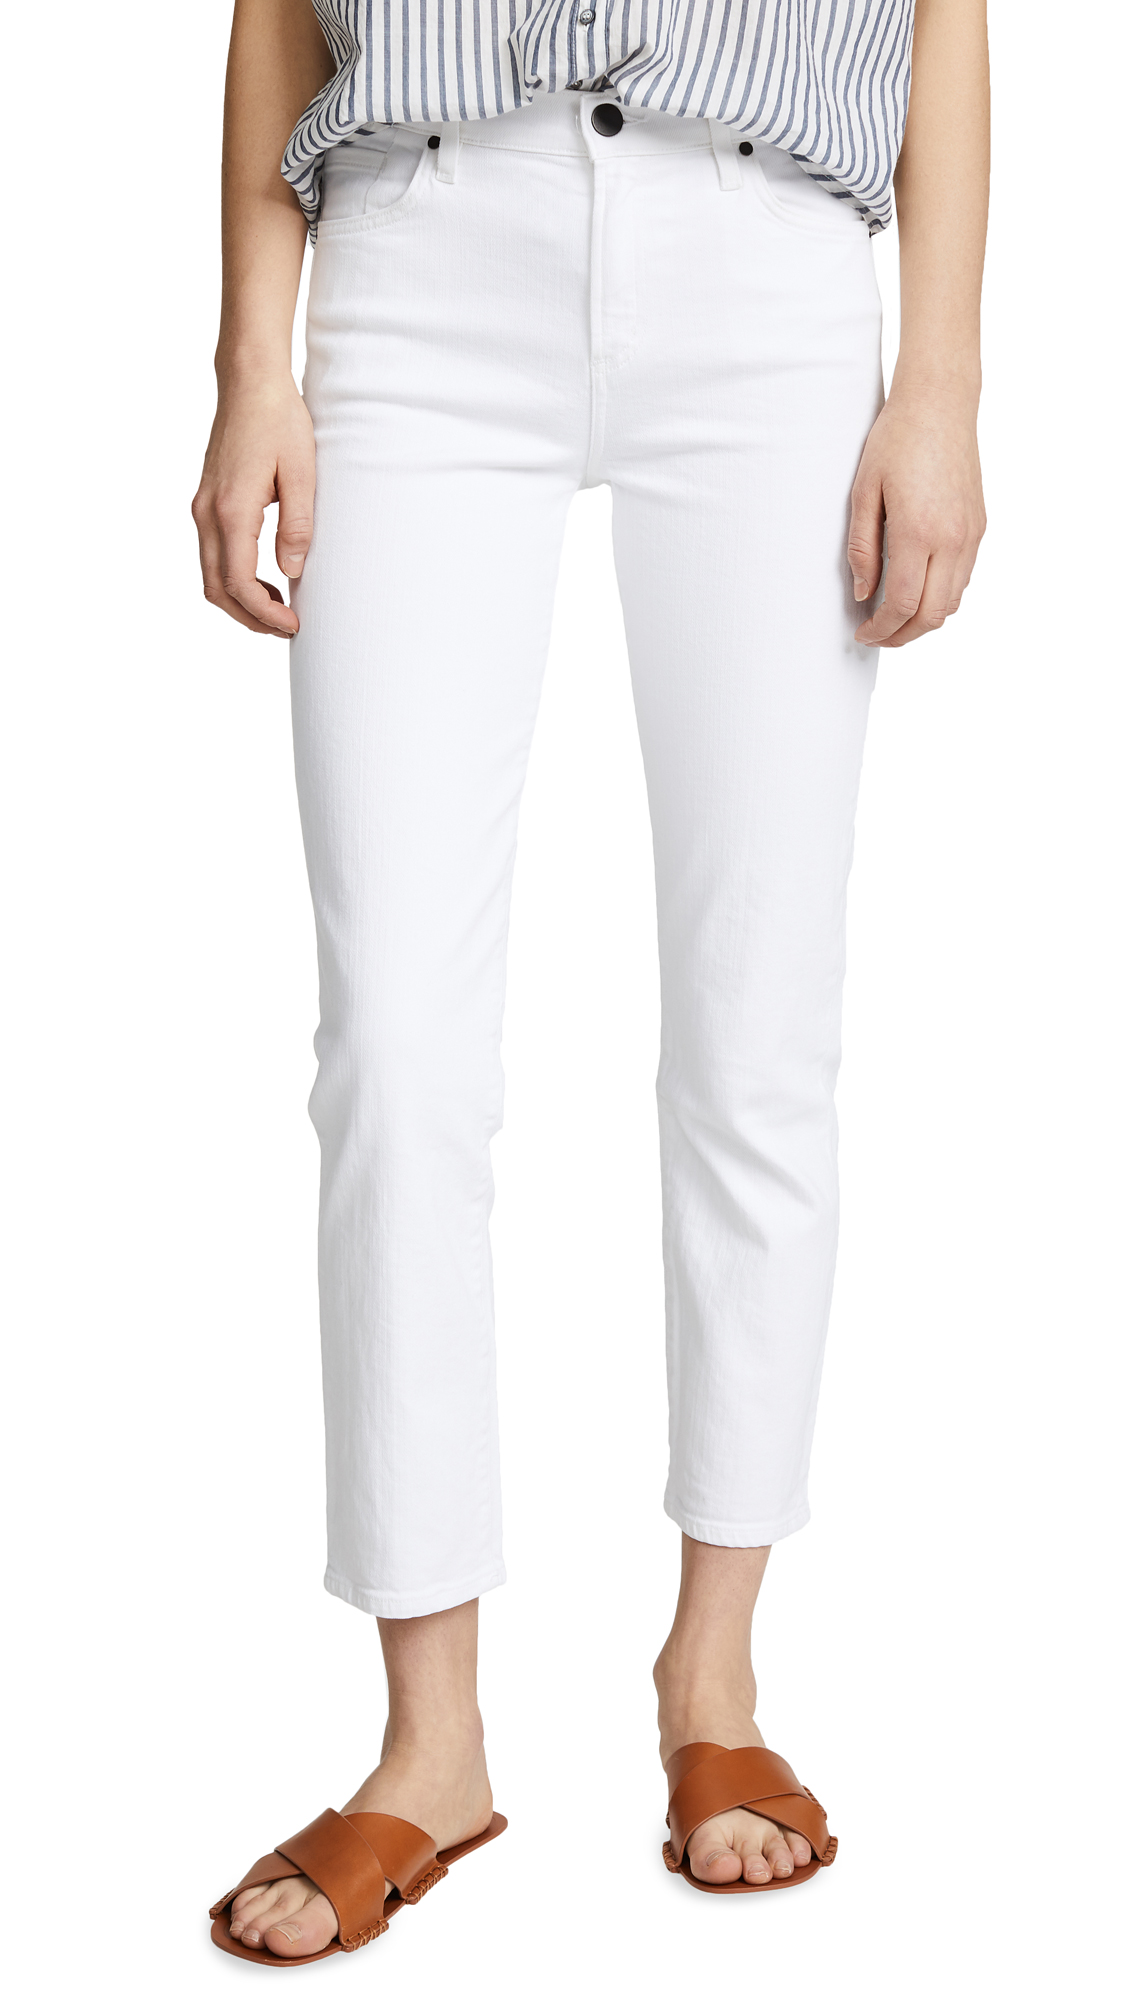 GOLDSIGN The Semi Fit Slim Straight Jeans In Bright White